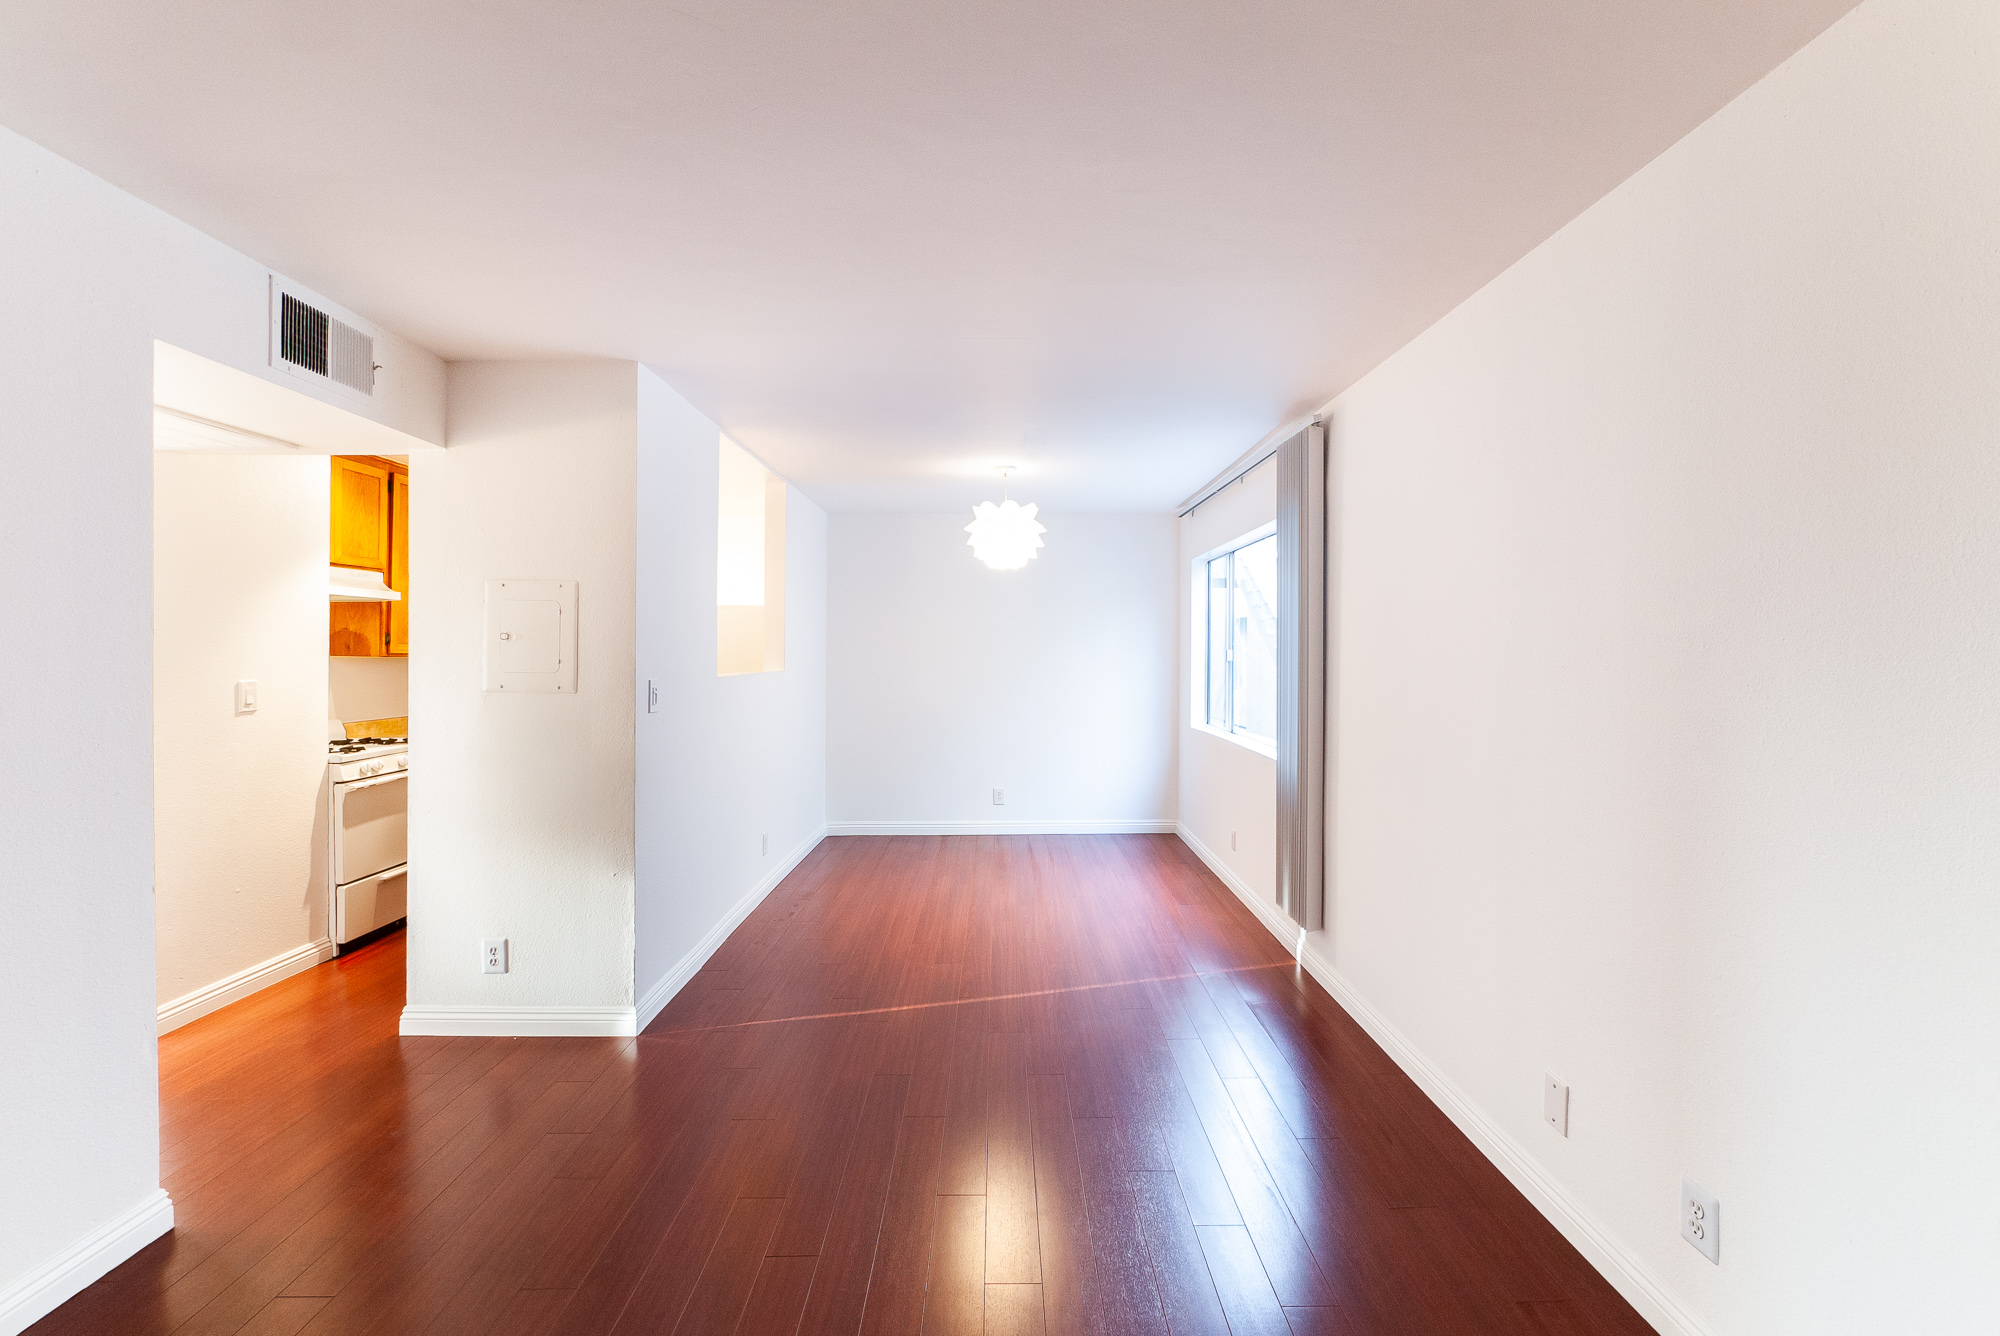 2 Bed, 2 Bath   Minutes to Highland Park, Glendale, and Atwater Village   Newly updated 1980's architecture in Glassell Park   Gated Parking